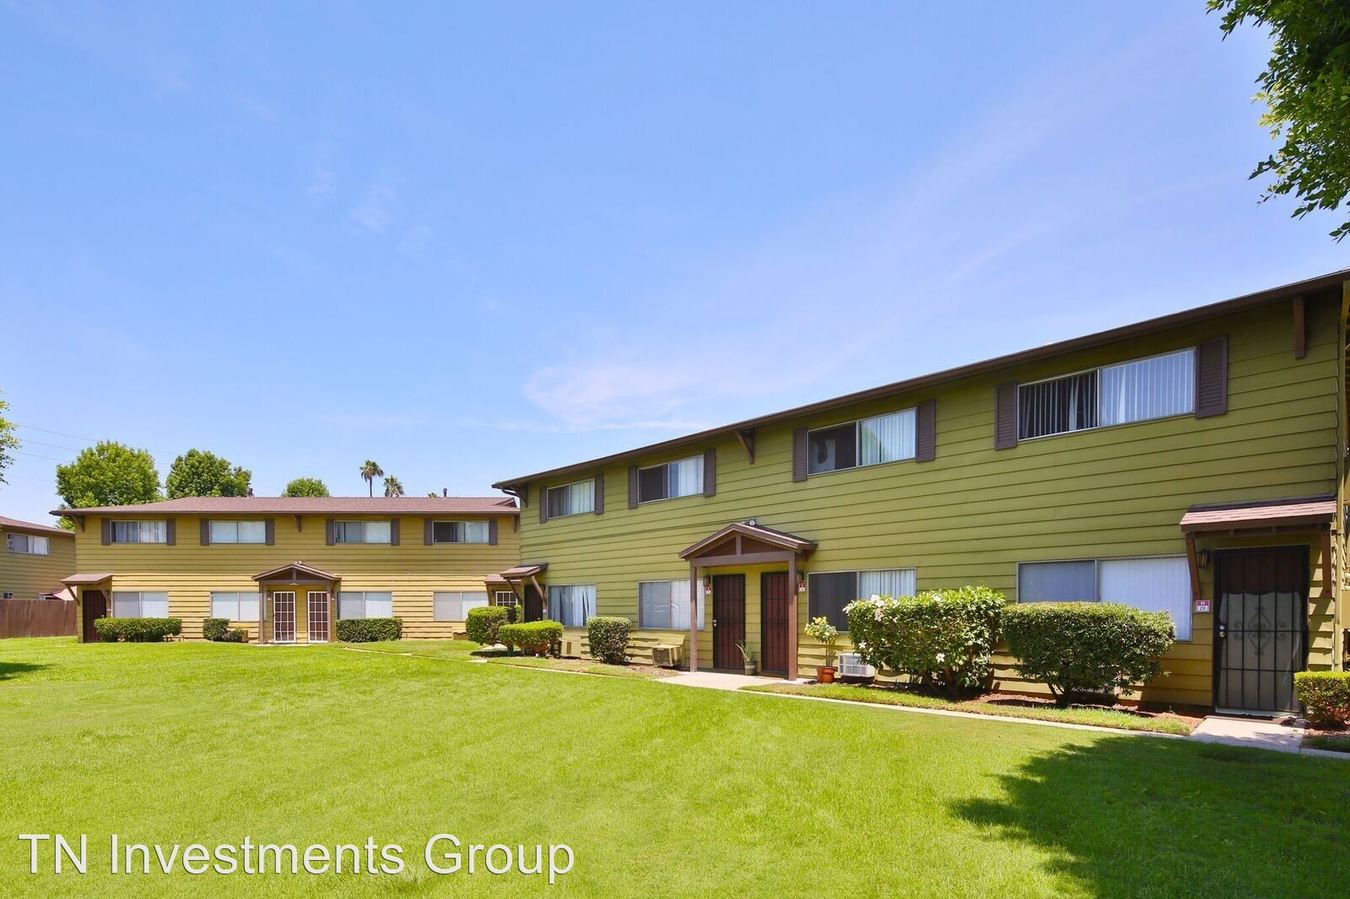 2 Bedrooms 1 Bathroom Apartment for rent at 13061 Lampson Avenue & 12402 Haster Street in Garden Grove, CA